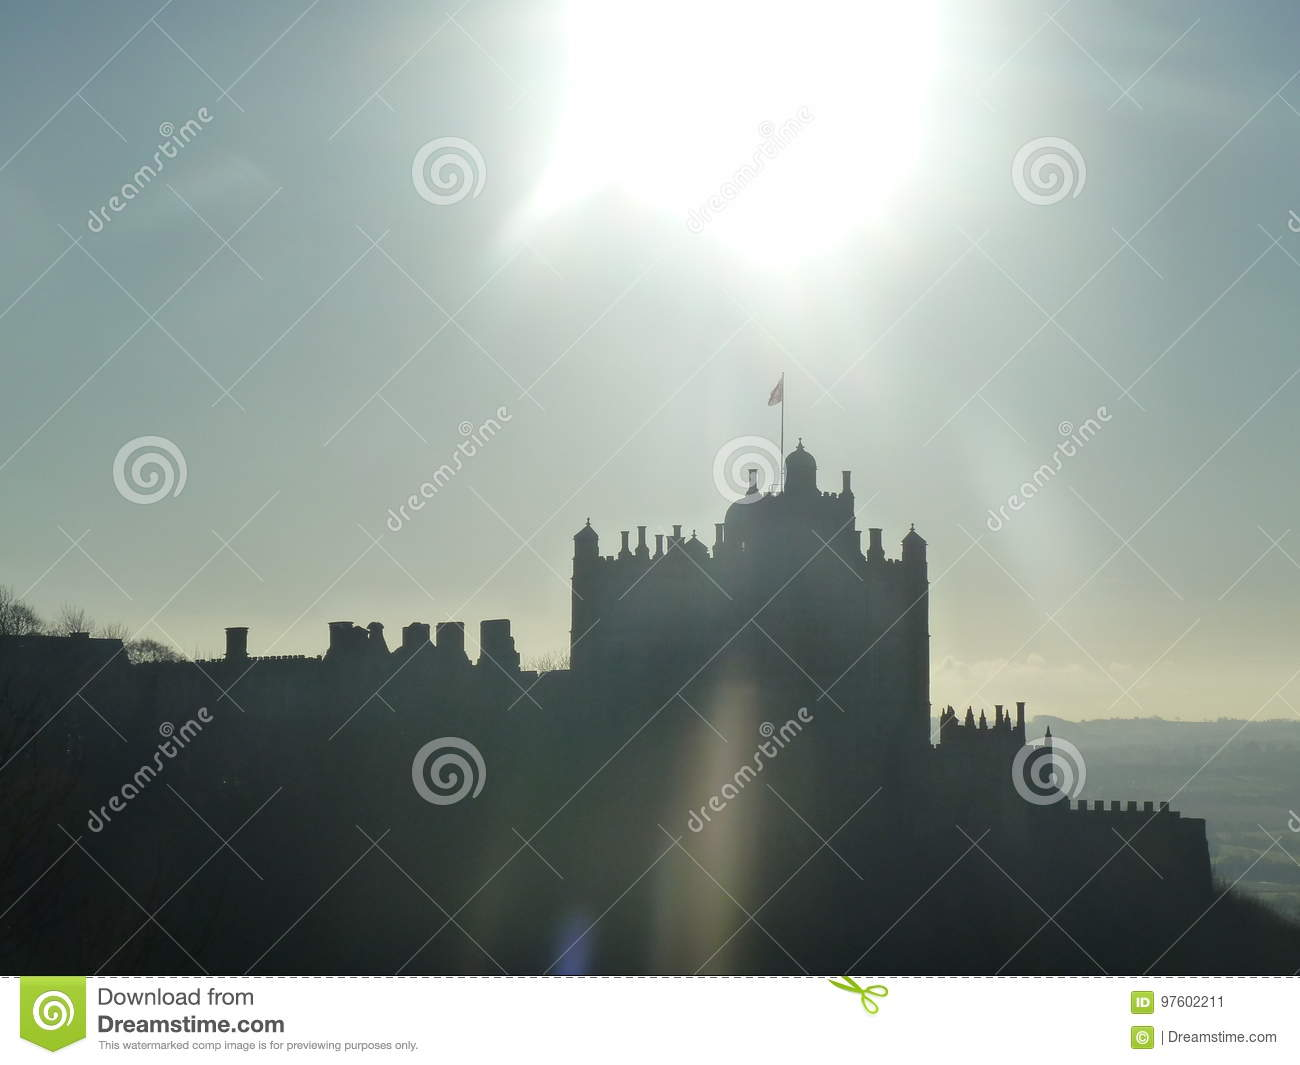 A Beautiful Silhouette of a Castle